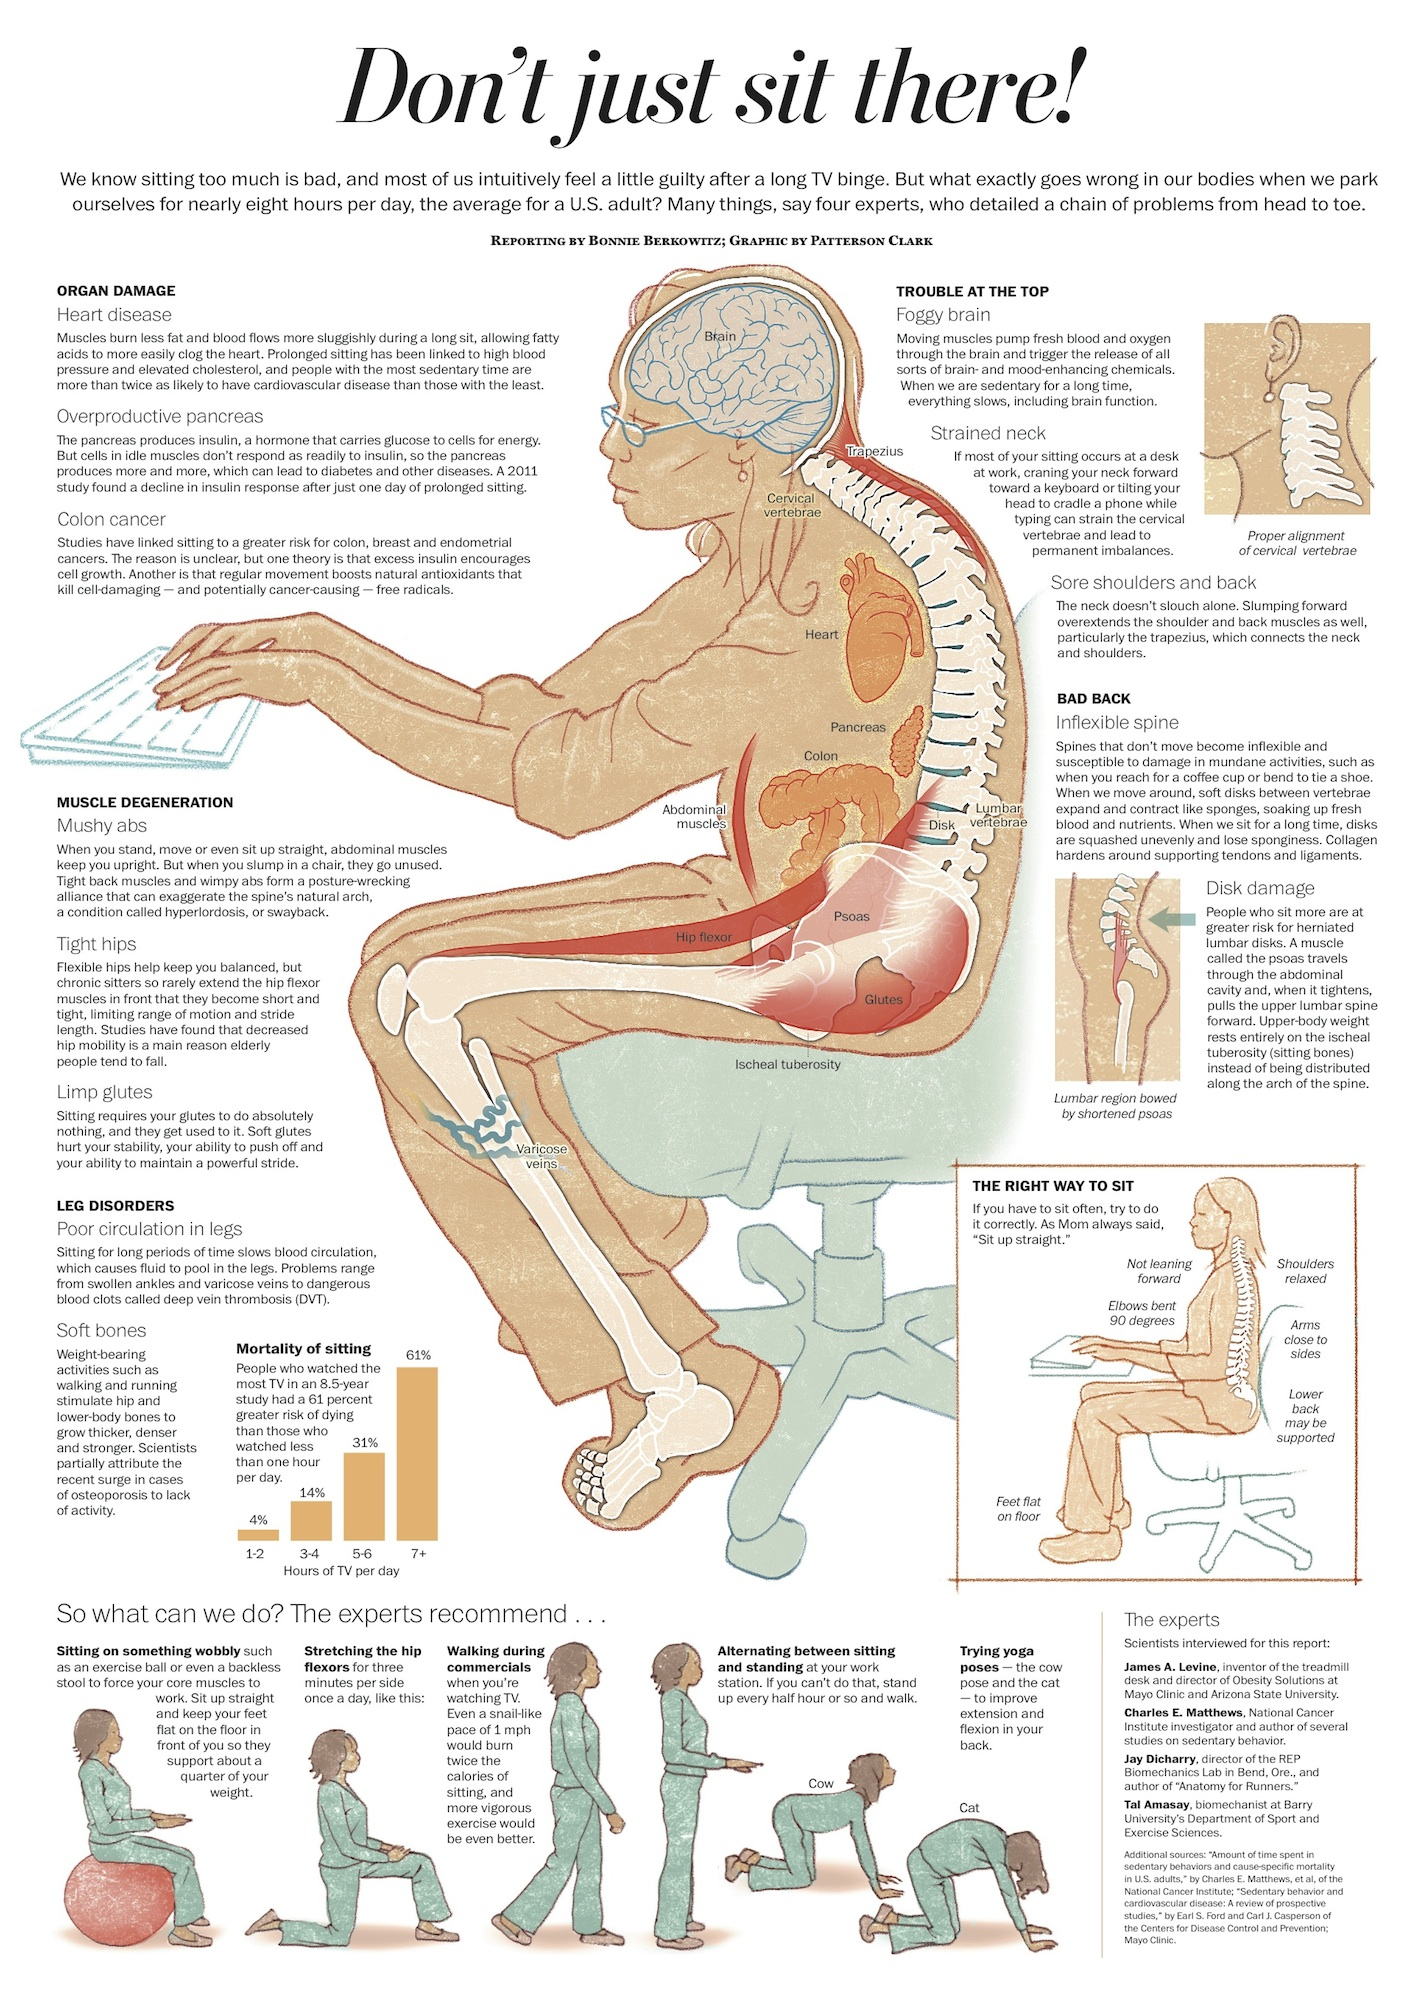 Pain in bottom when sitting